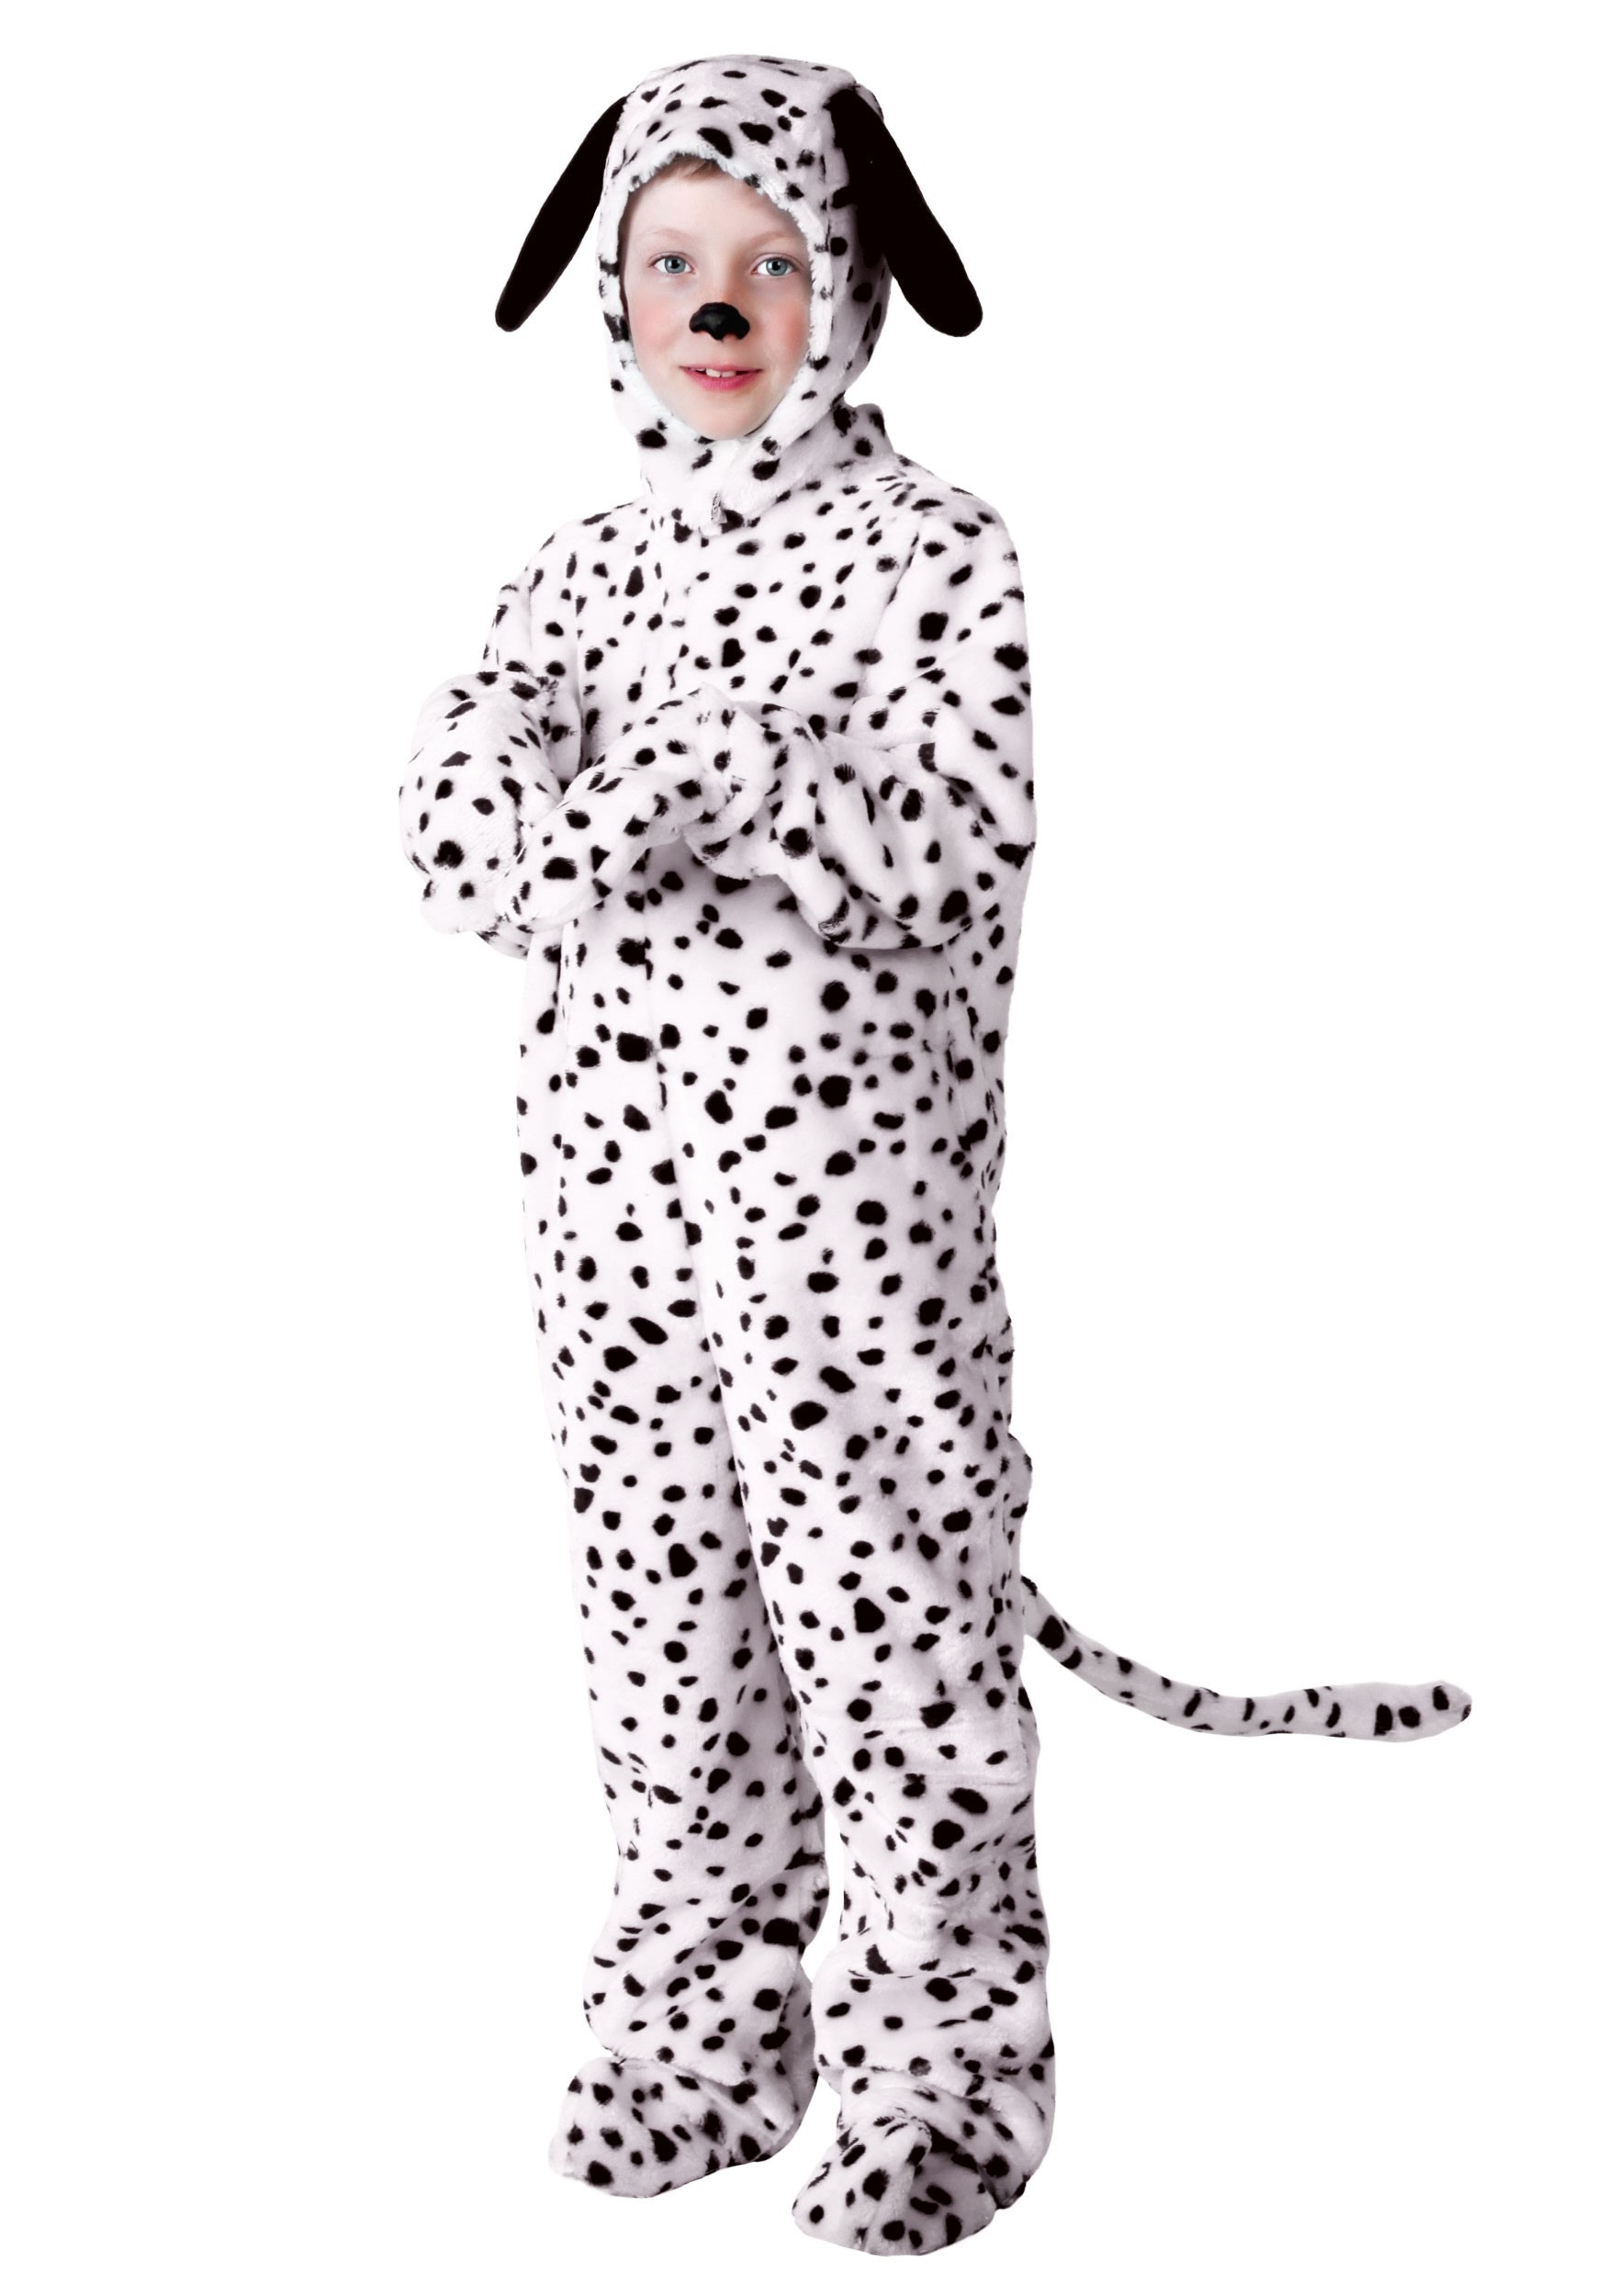 kids dalmatian costume sc 1 st halloween costumes image number 5 of semi pro